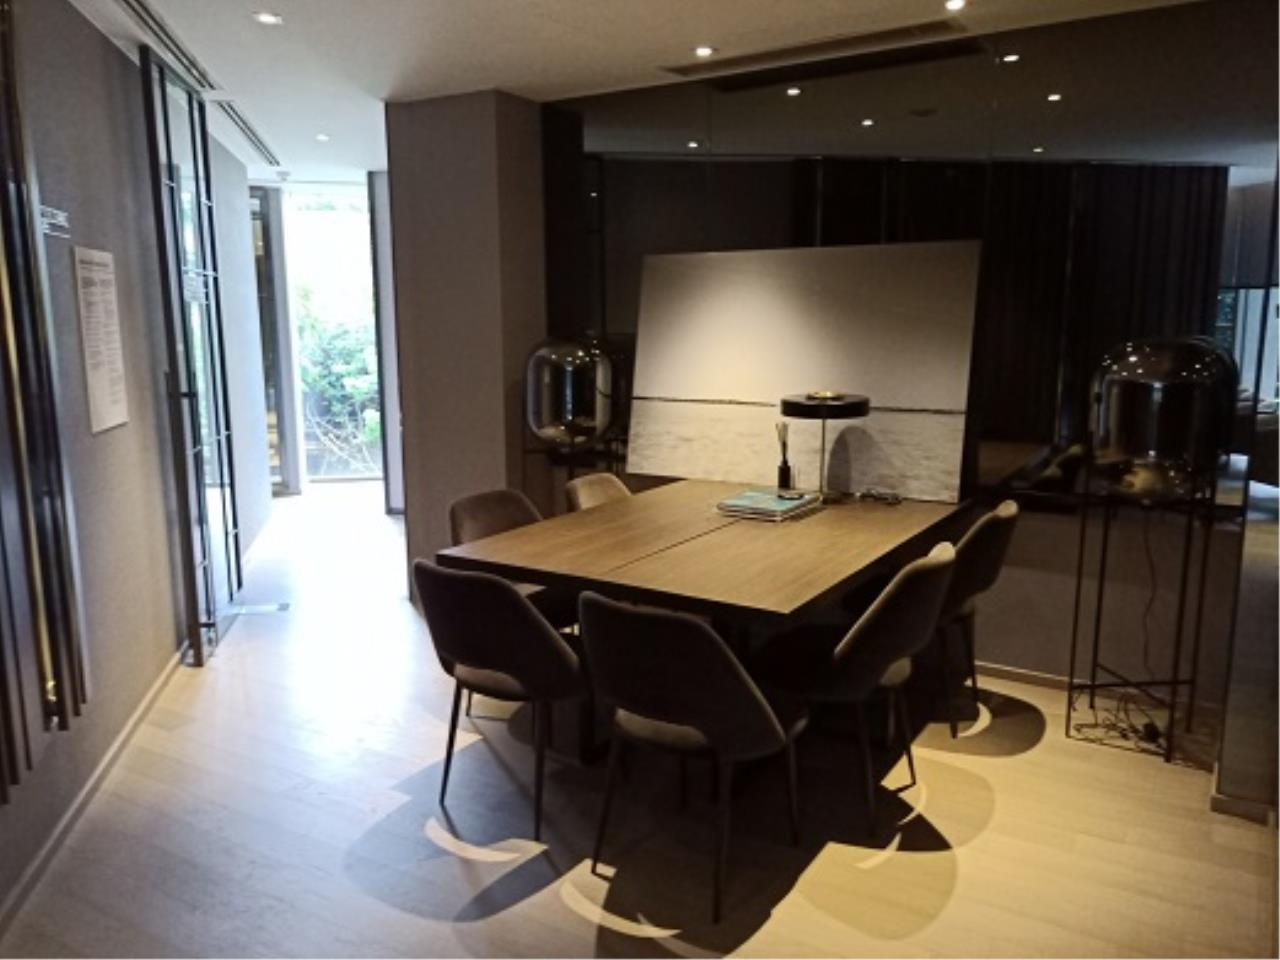 RE/MAX All Star Realty Agency's Ashton Residence 41 High Luxury Condo for sale/rent (BTS Phrom Pong) 11